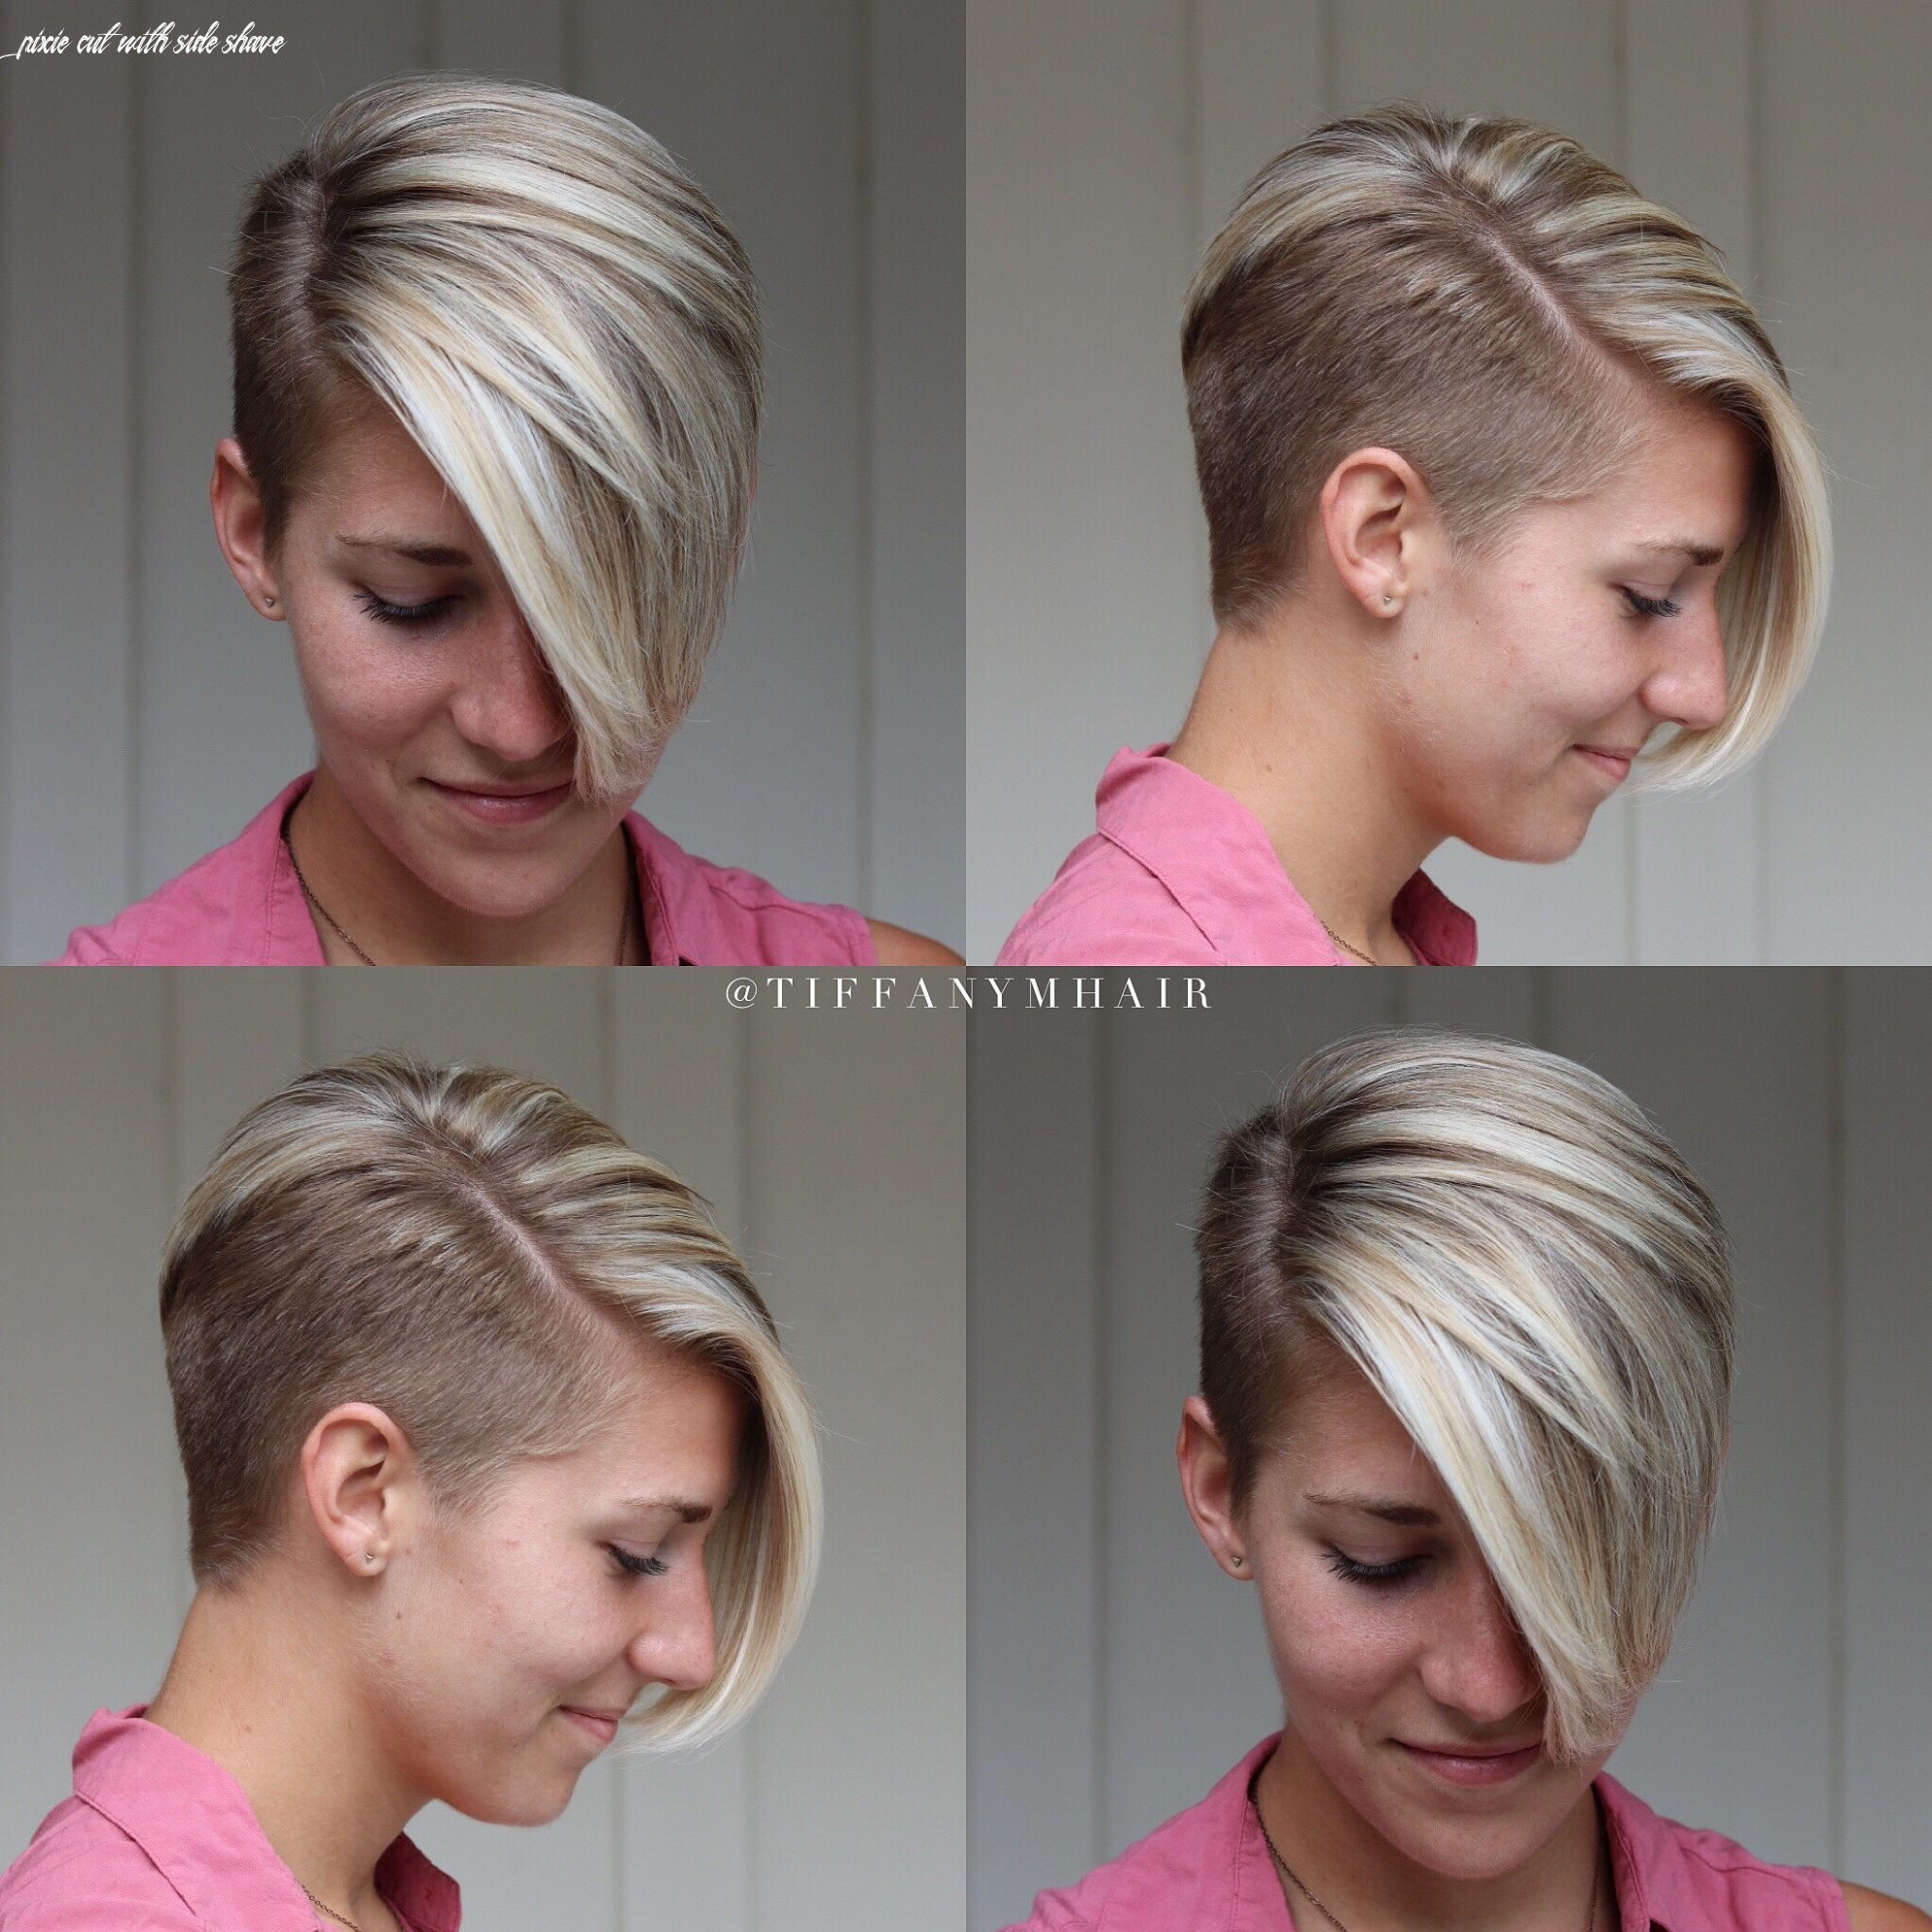 Short side shave | short shaved hairstyles, half shaved hair, very